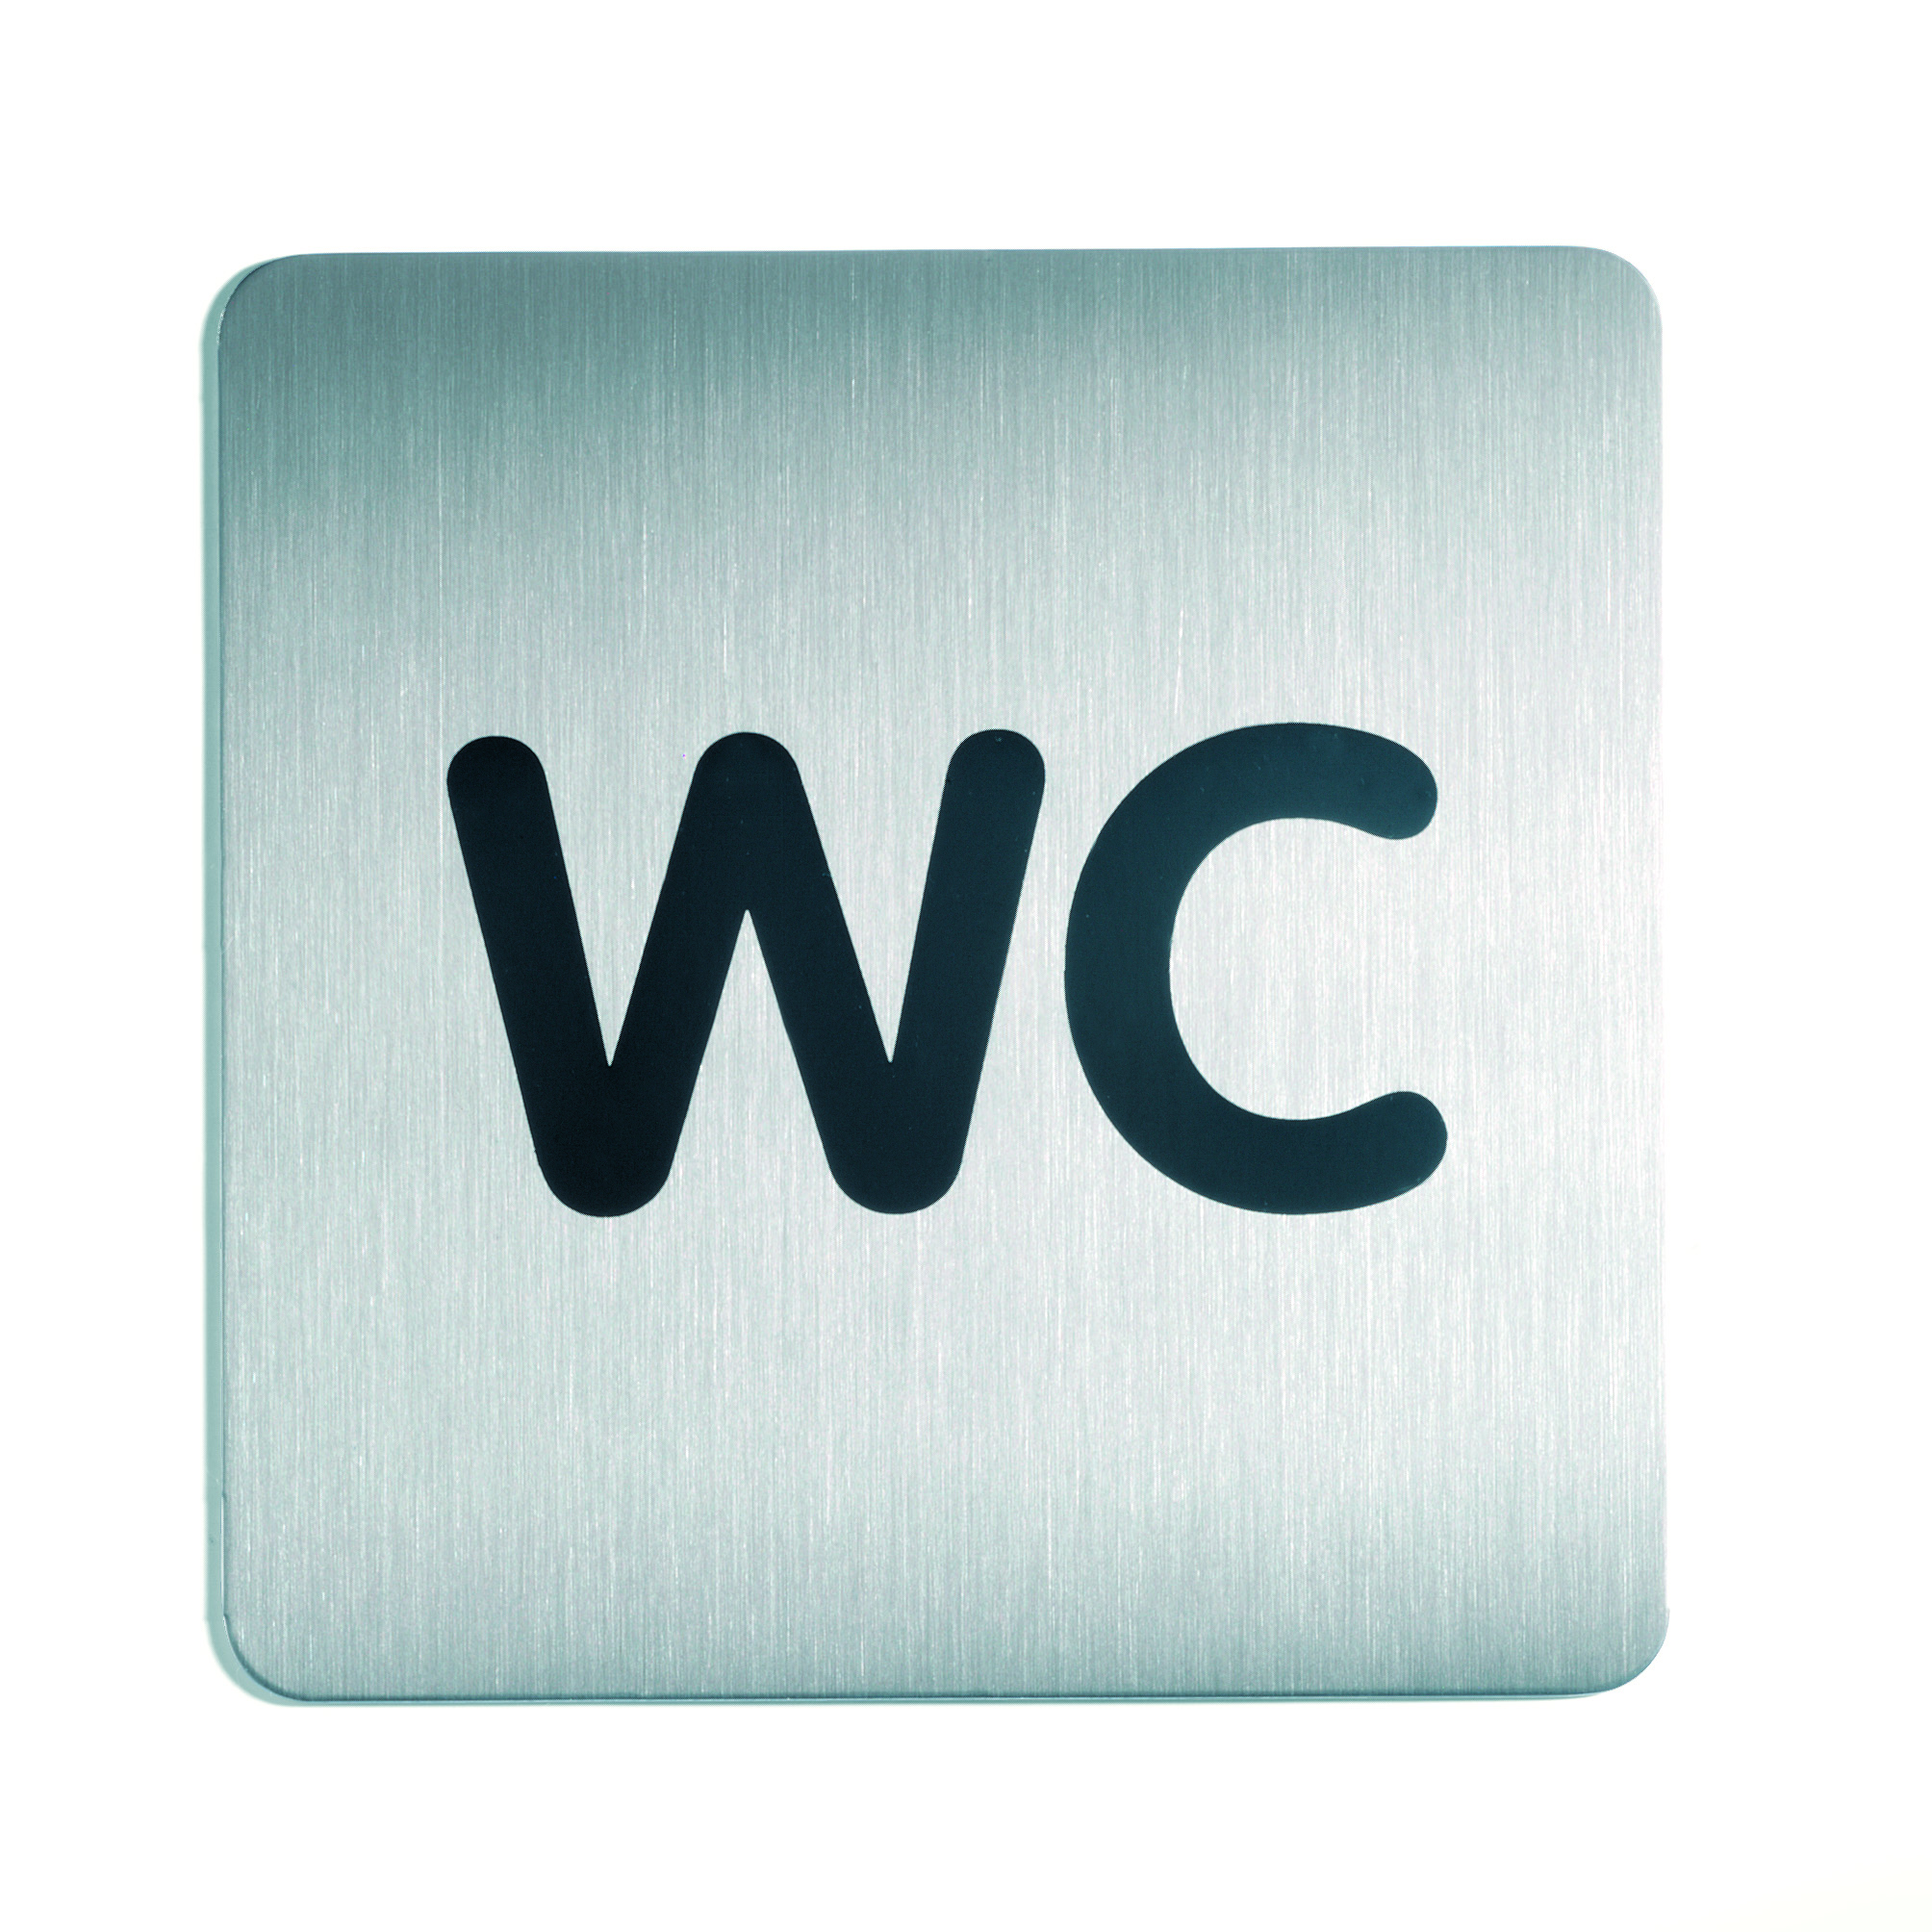 RVS Pictogram 150x150mm wc